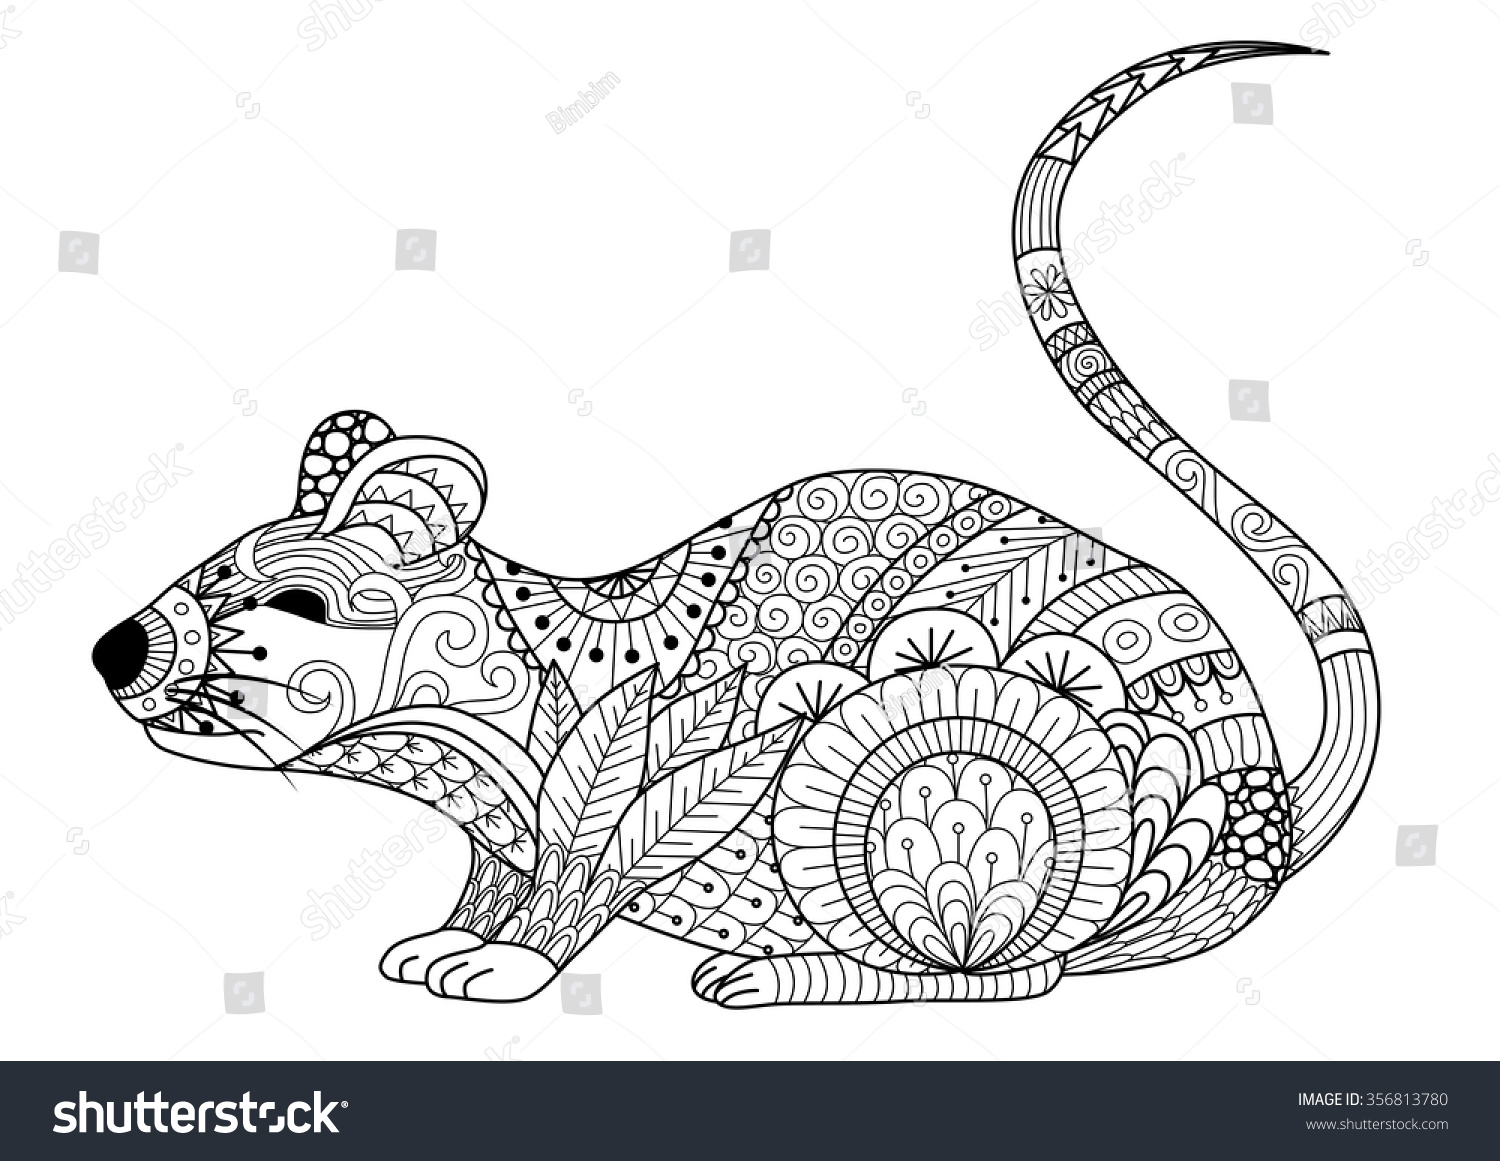 Ze zen inspiration coloring book - Hand Drawn Zentangle Mouse For Coloring Book For Adult And Other Decorations Download Image Ze Zen Coloring Book Pages